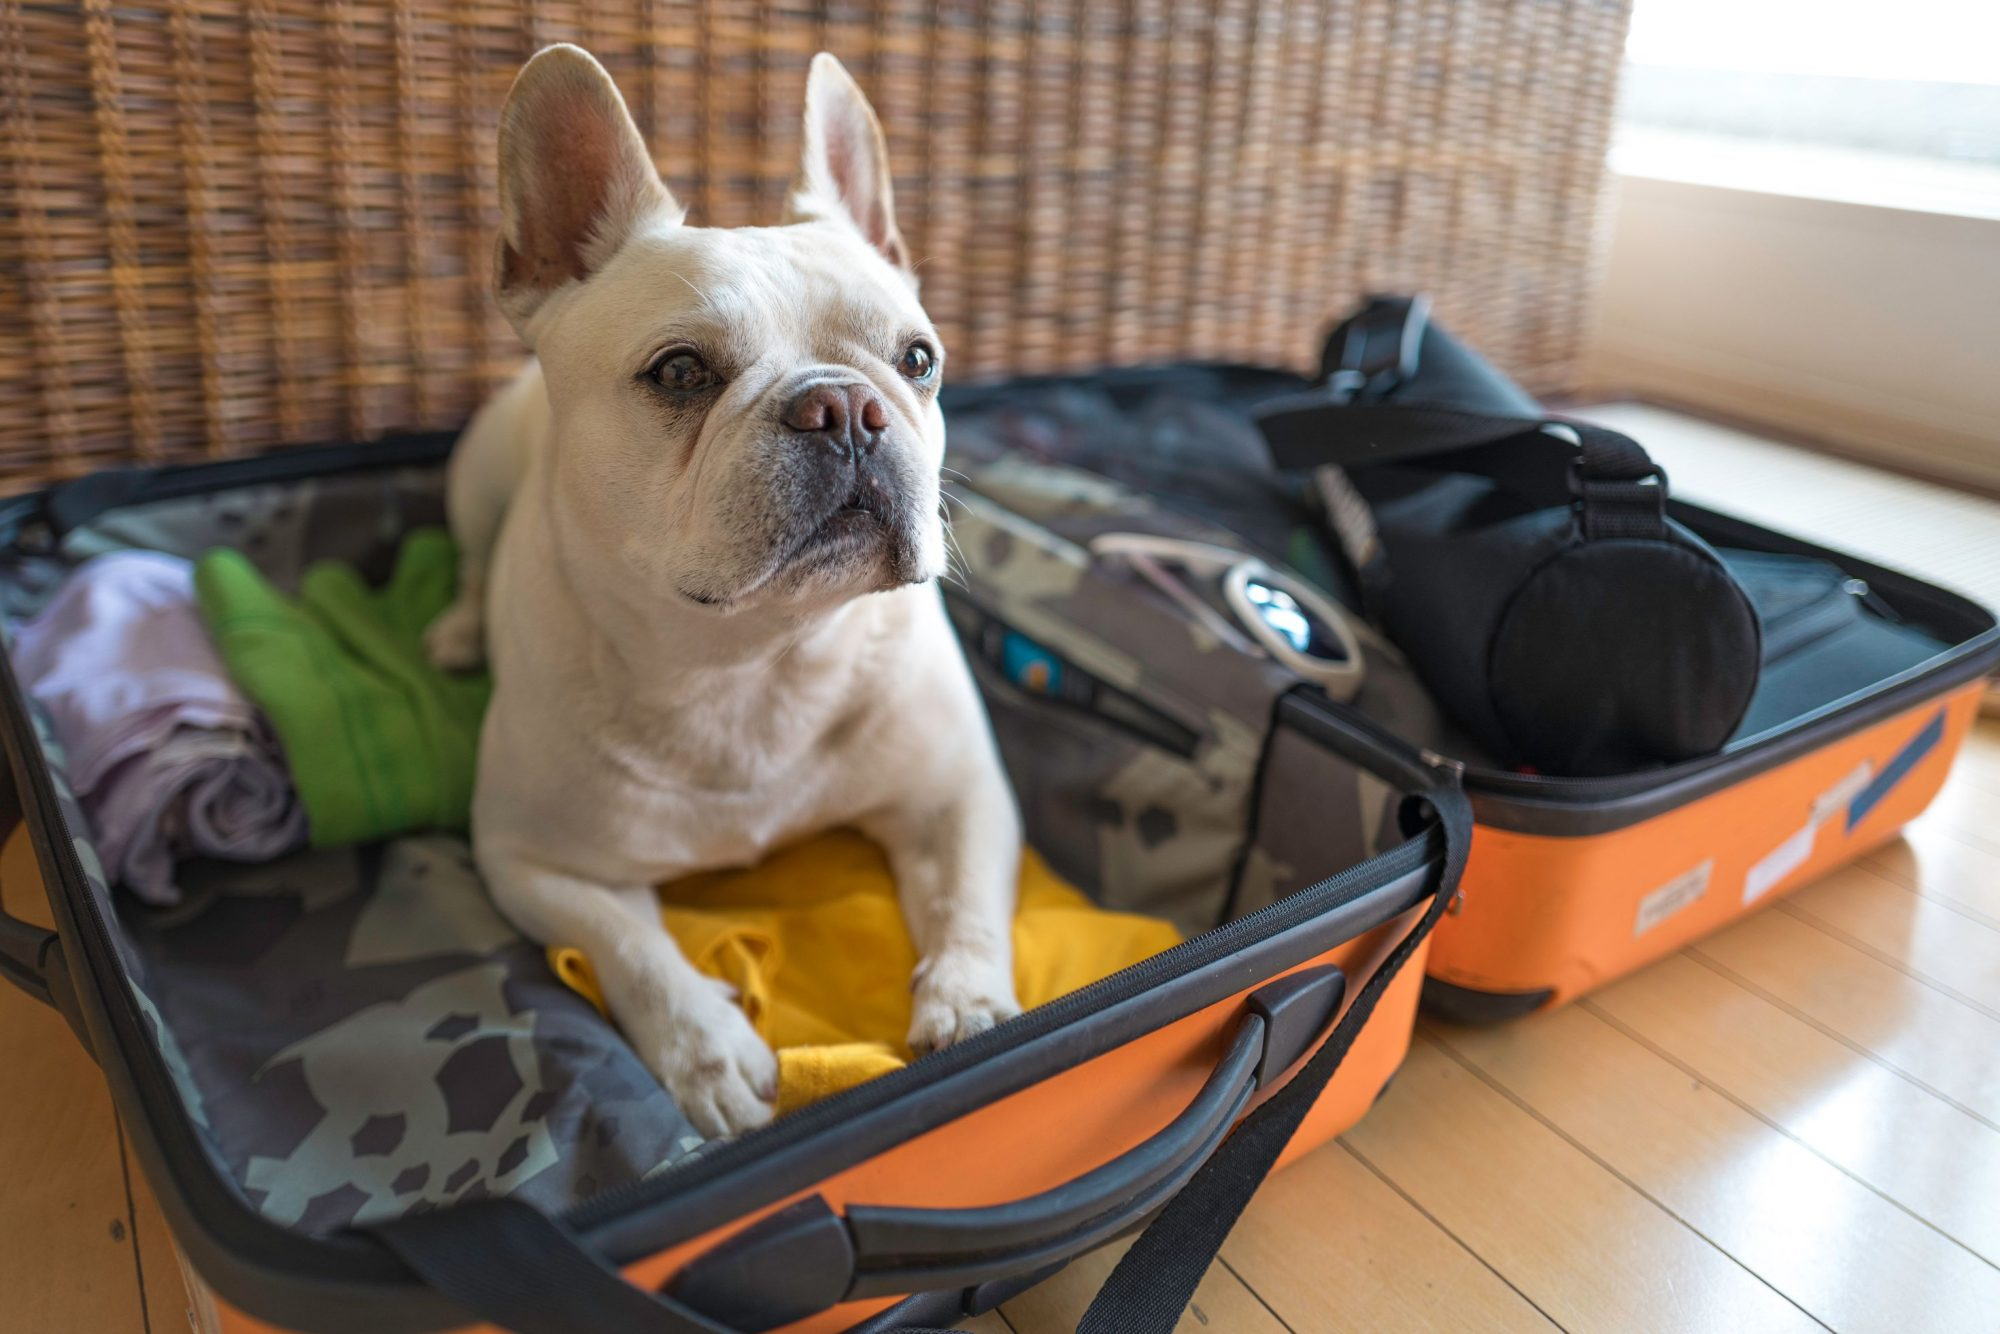 Pet boarding: a pet getting ready to go on vacation boarding.